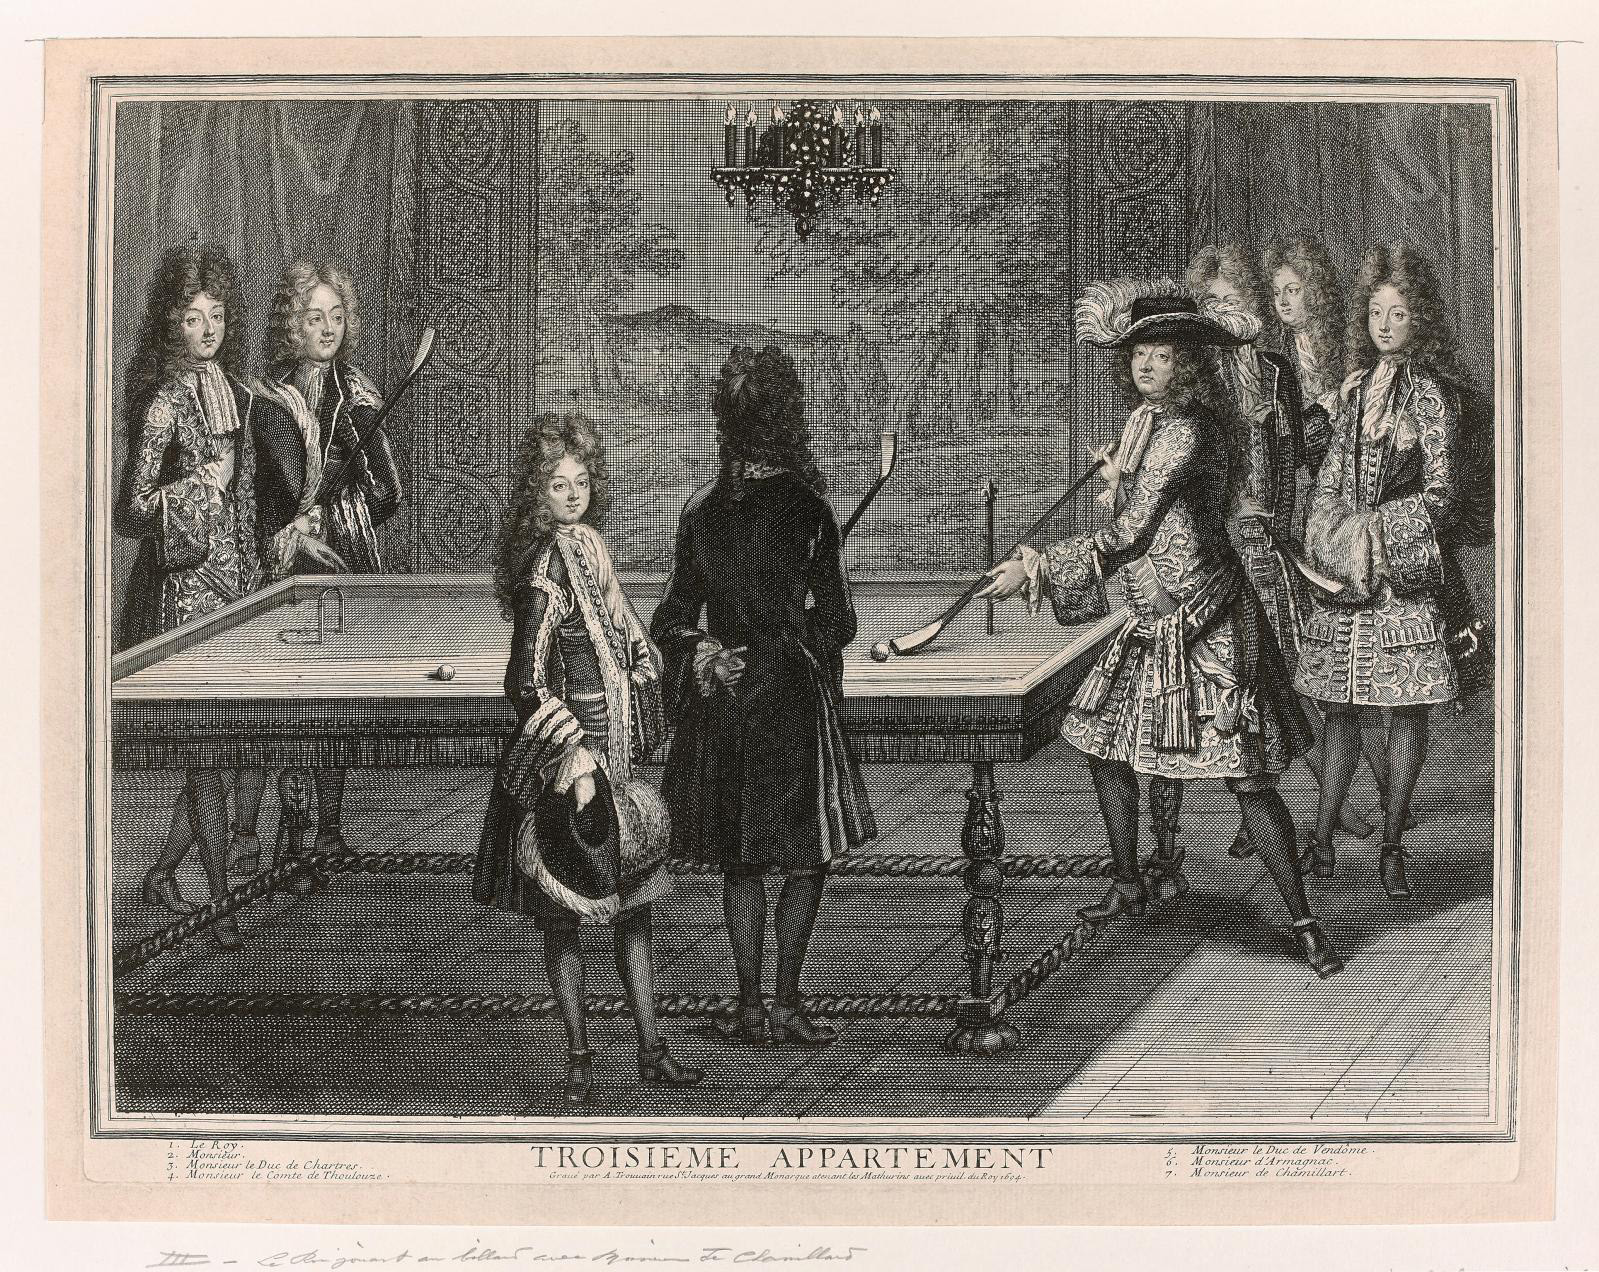 Antoine Trouvain (1650-1710), Le Roi jouant au billard avec monsieur de Chamillard (The King playing billiards with Monsieur de Chamillard